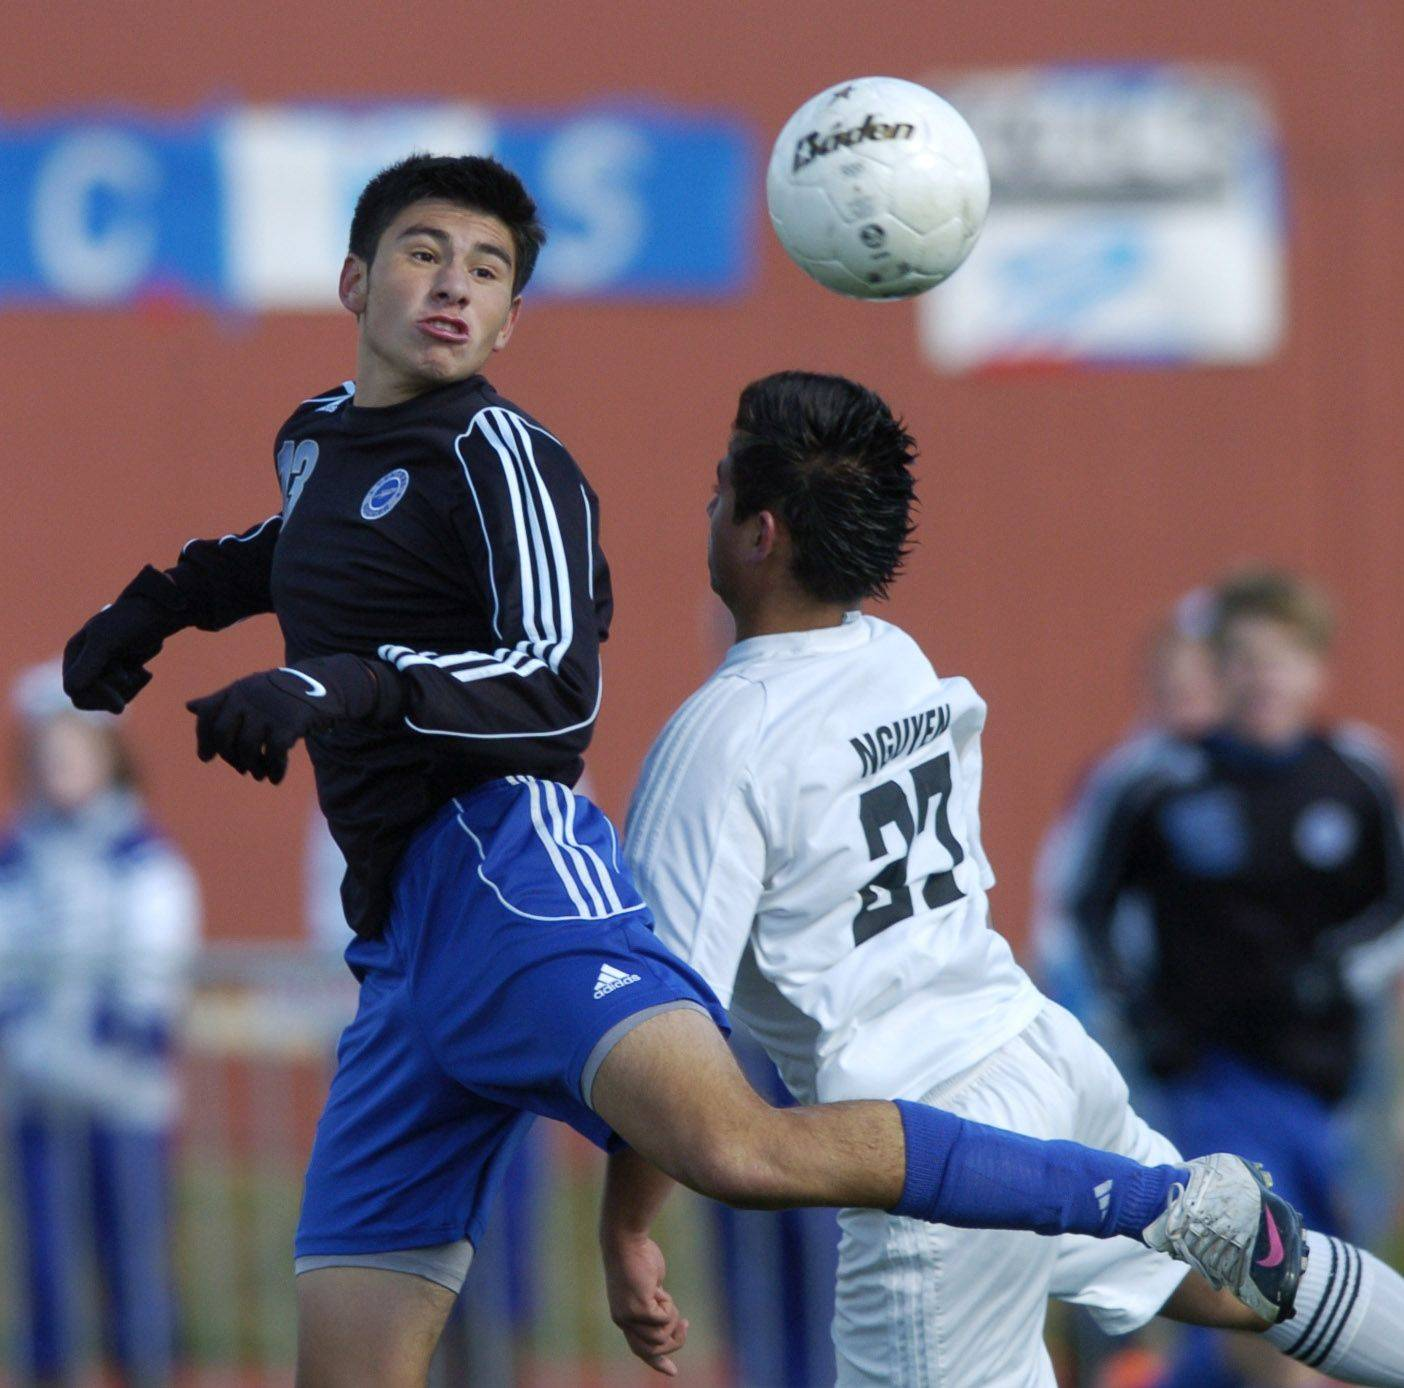 Burlington Central's Erick Uribe directs the ball with a header past Ridgewood's Maciej Nguyen.